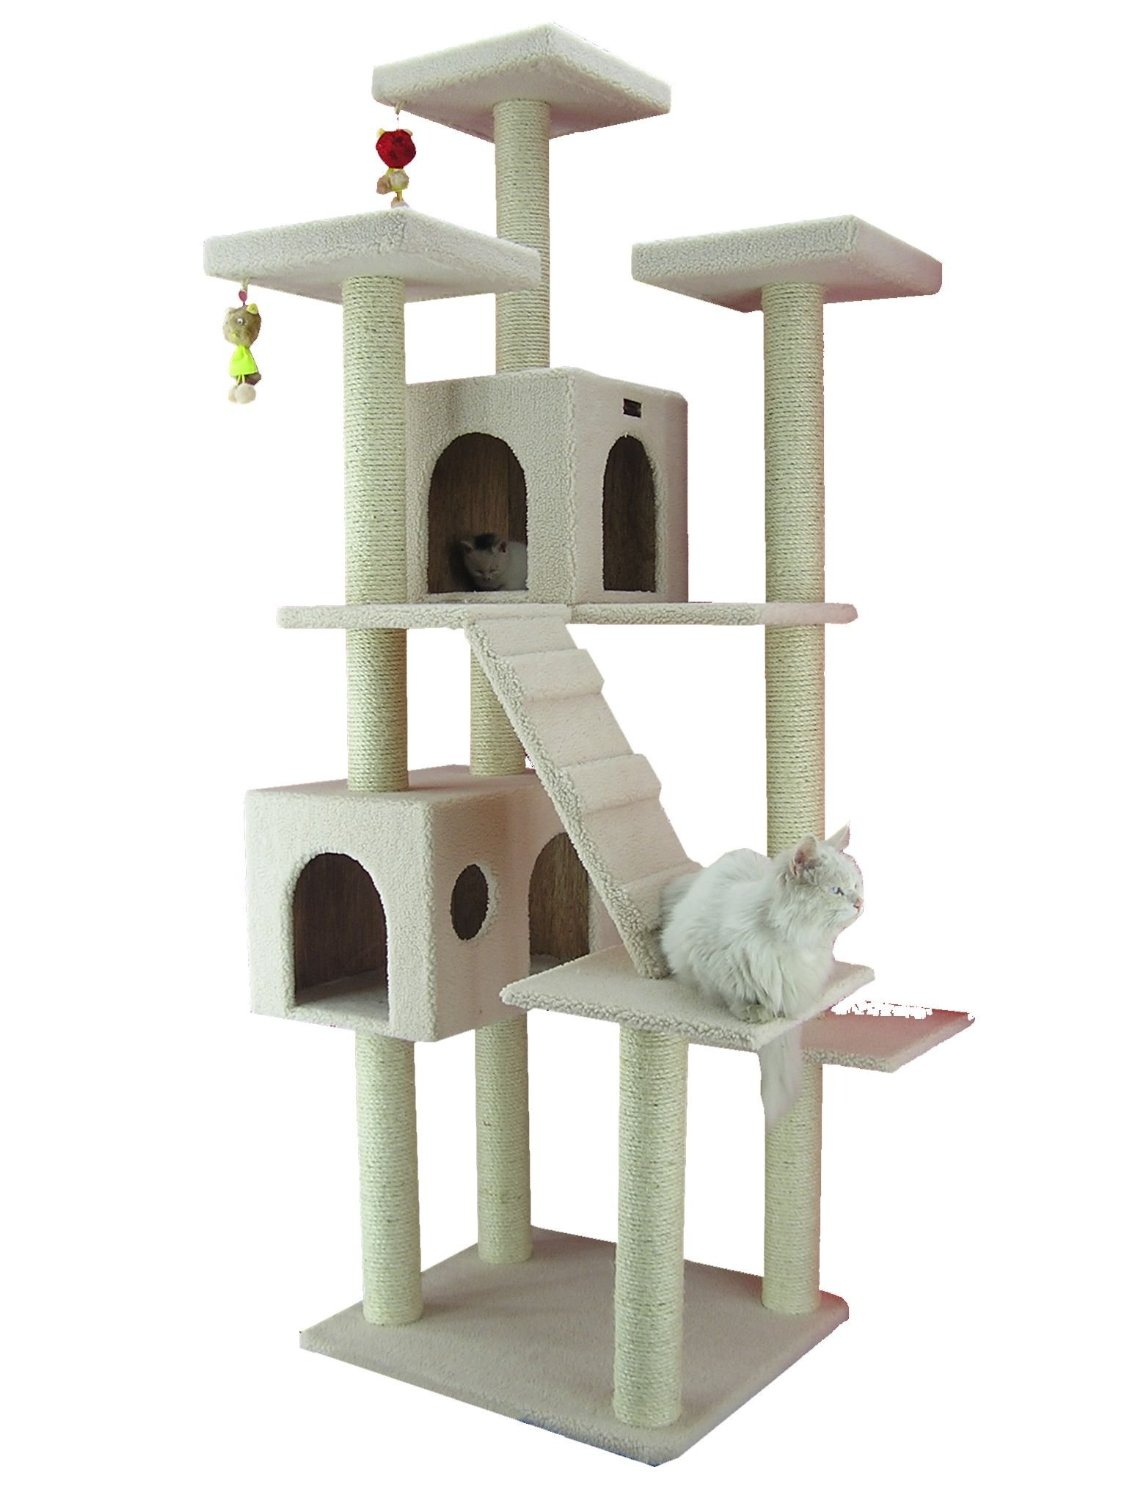 Armarkat's Classic Cat Condo with Sturdy Plywood and Ample Space – 5 Colors